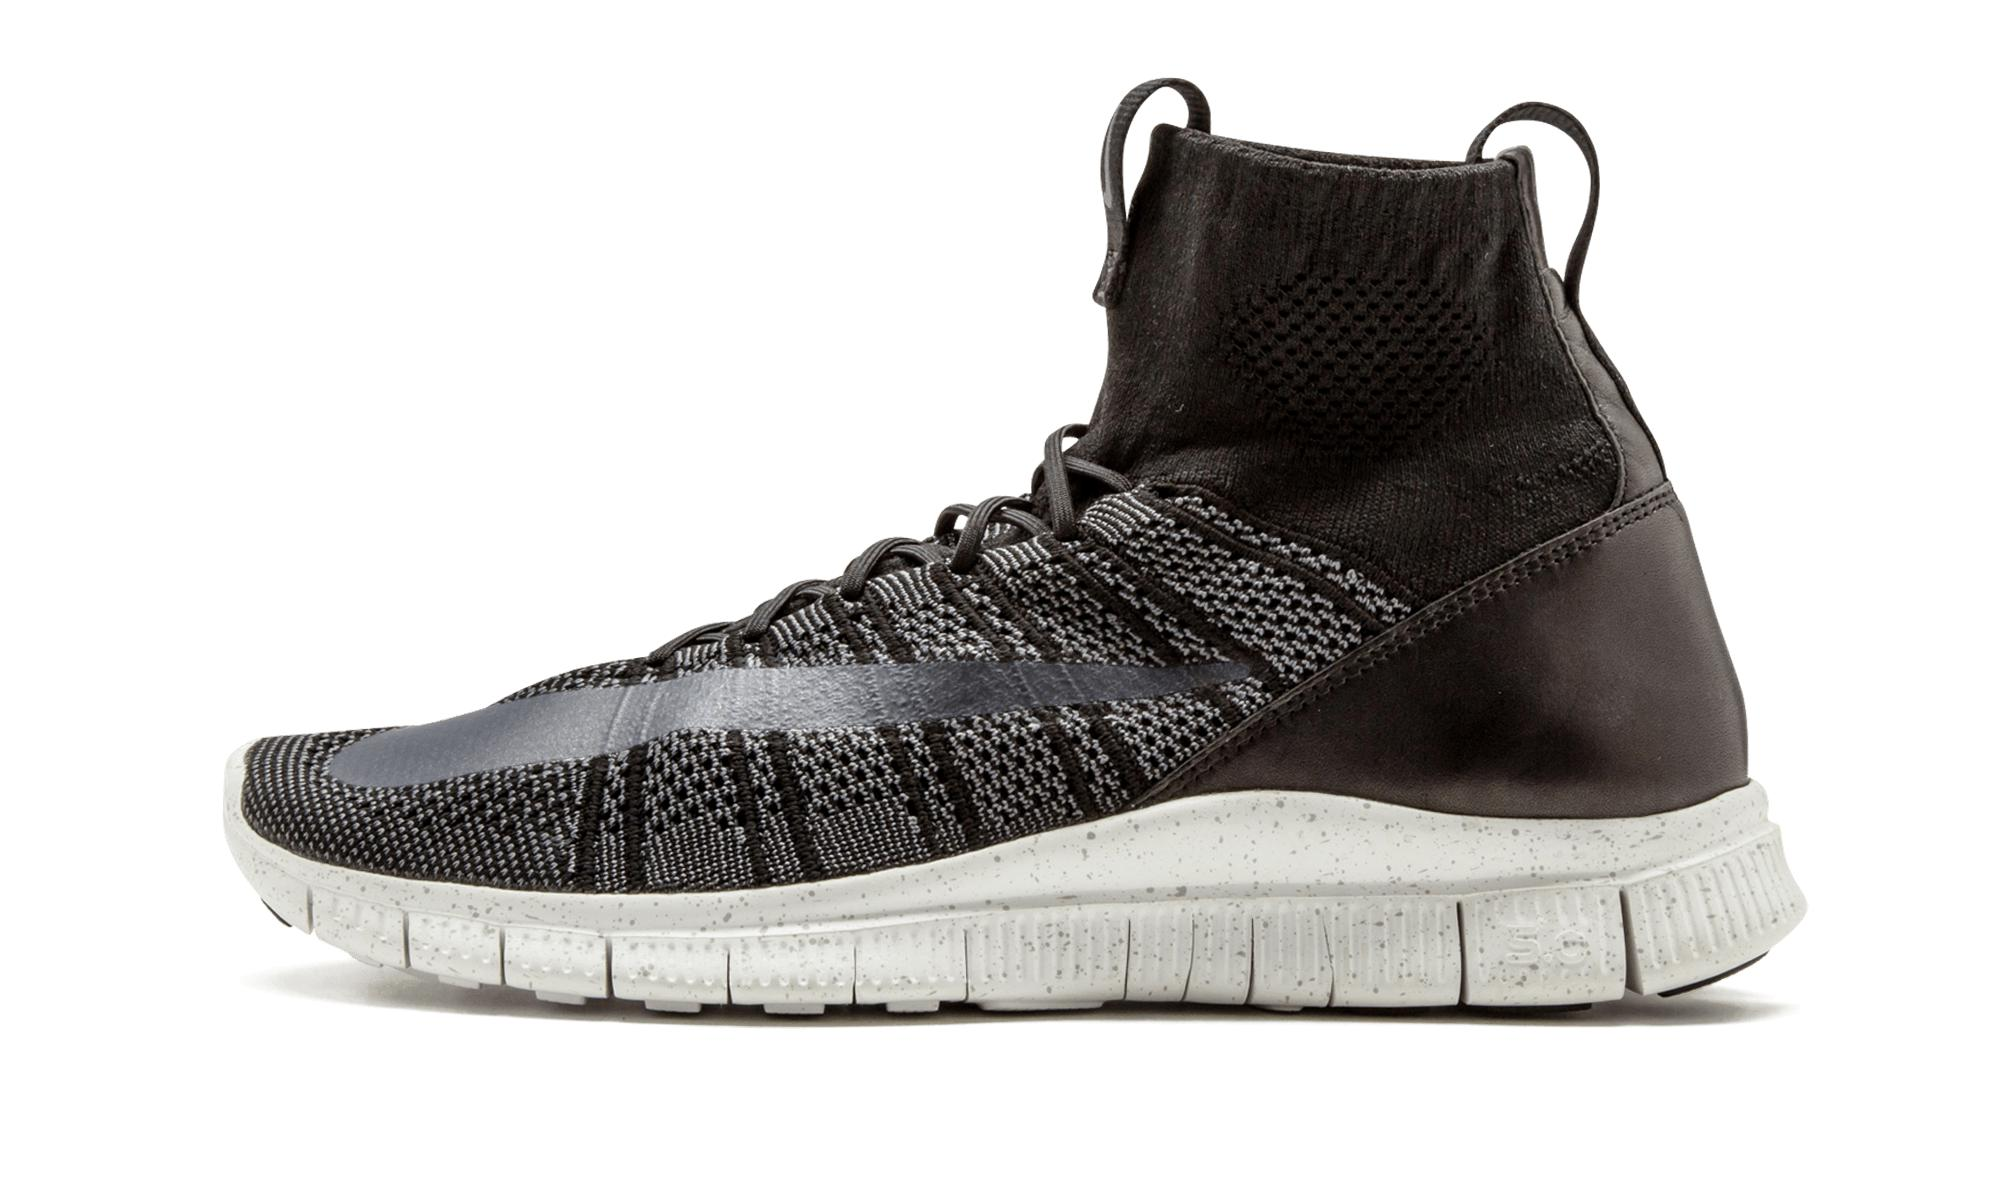 814c77446884a Lyst - Nike Htm Free Mercurial Superfly in Black for Men - Save 29%